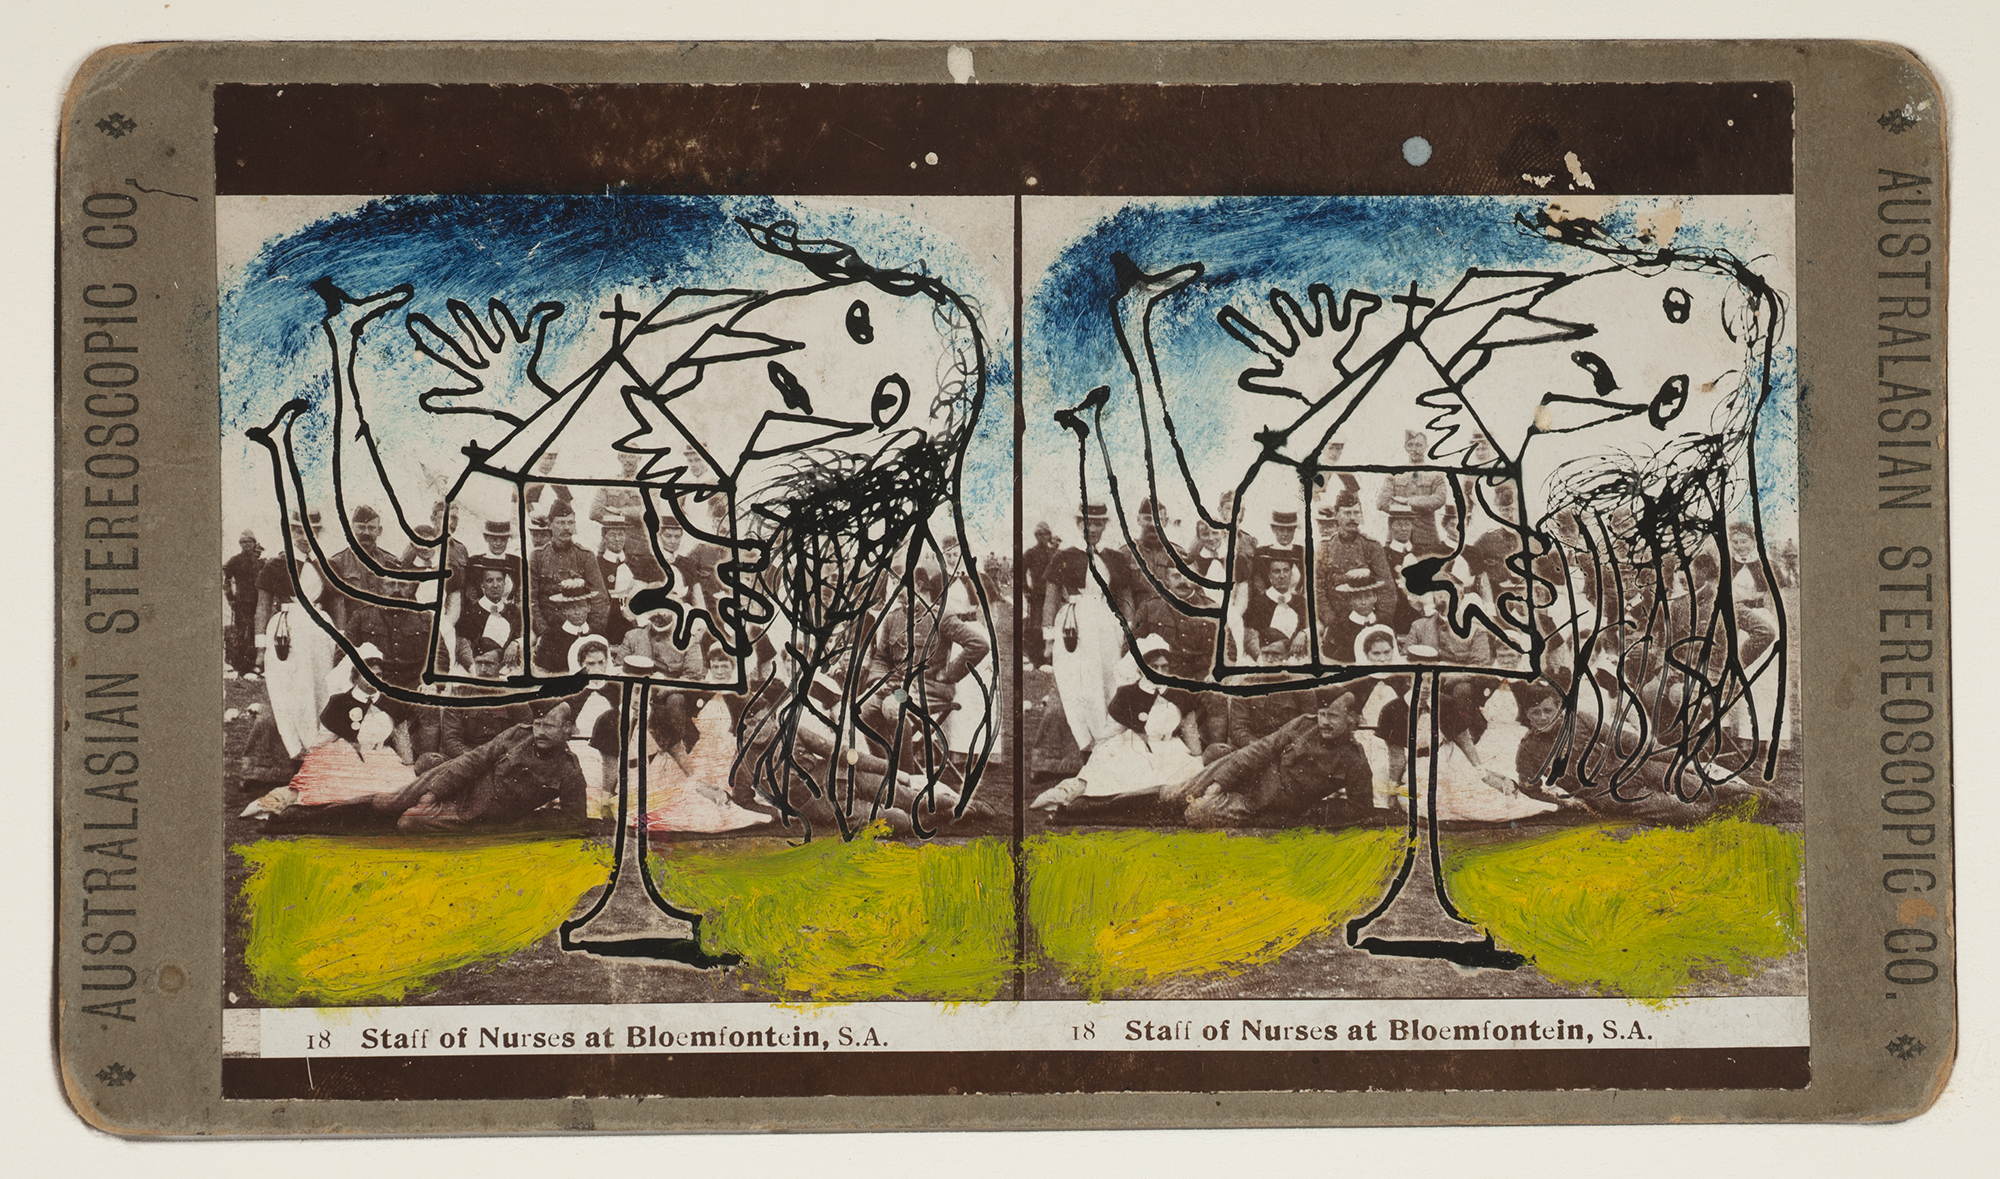 Sidney Nolan  Staff of Nurses at Bloemfontein, S.A.  c.1942 oil and ink on stereograph 10 x 17.5 cm Heide Museum of Modern Art, Melbourne Bequest of John and Sunday Reed 1982 © Sidney Nolan Trust